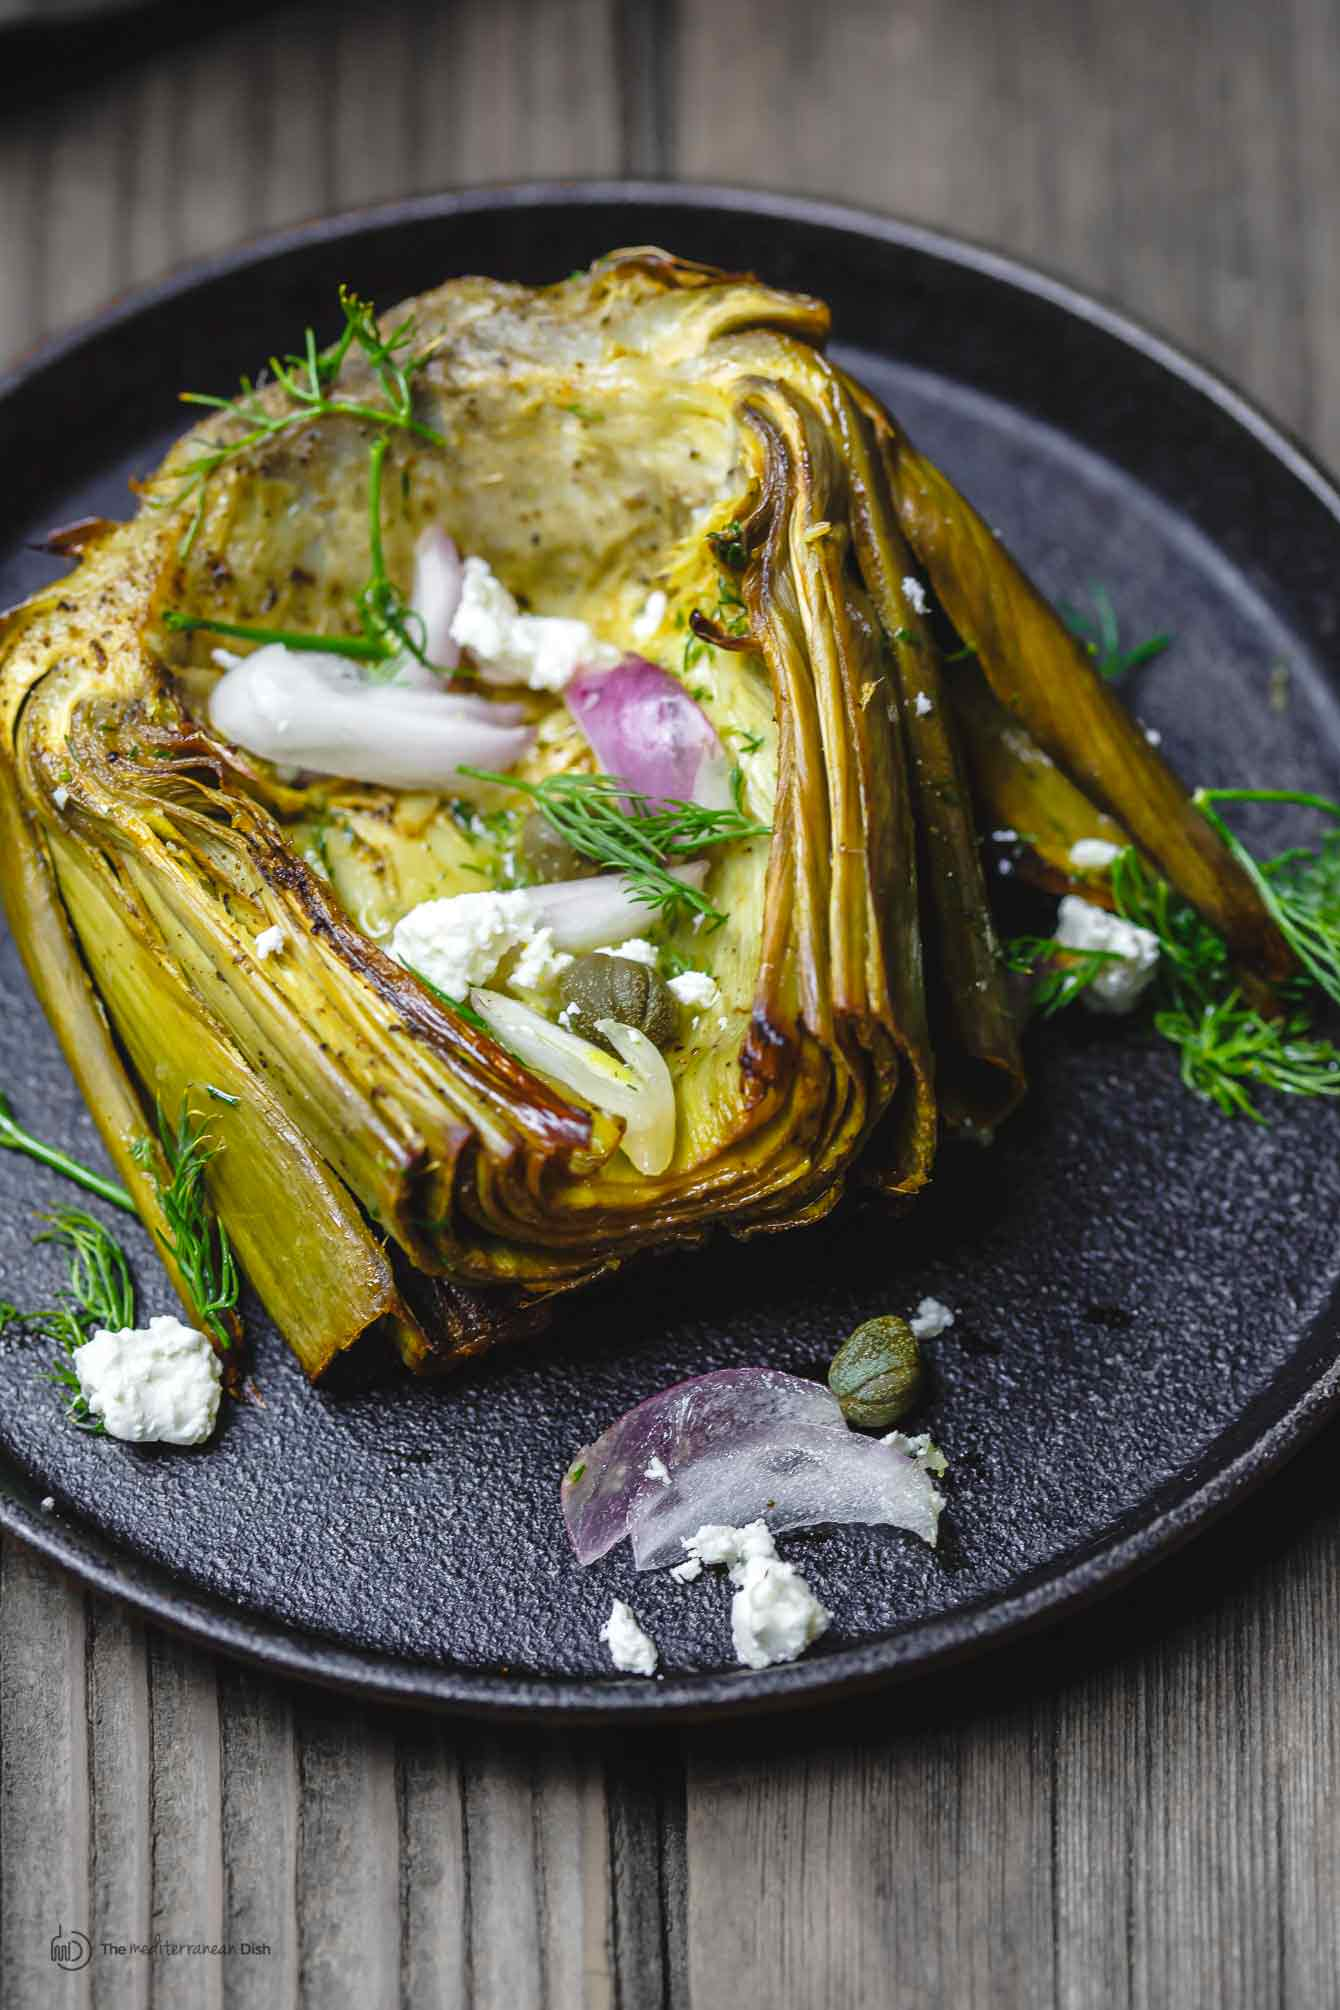 One serving of roasted artichoke on plate to be served.